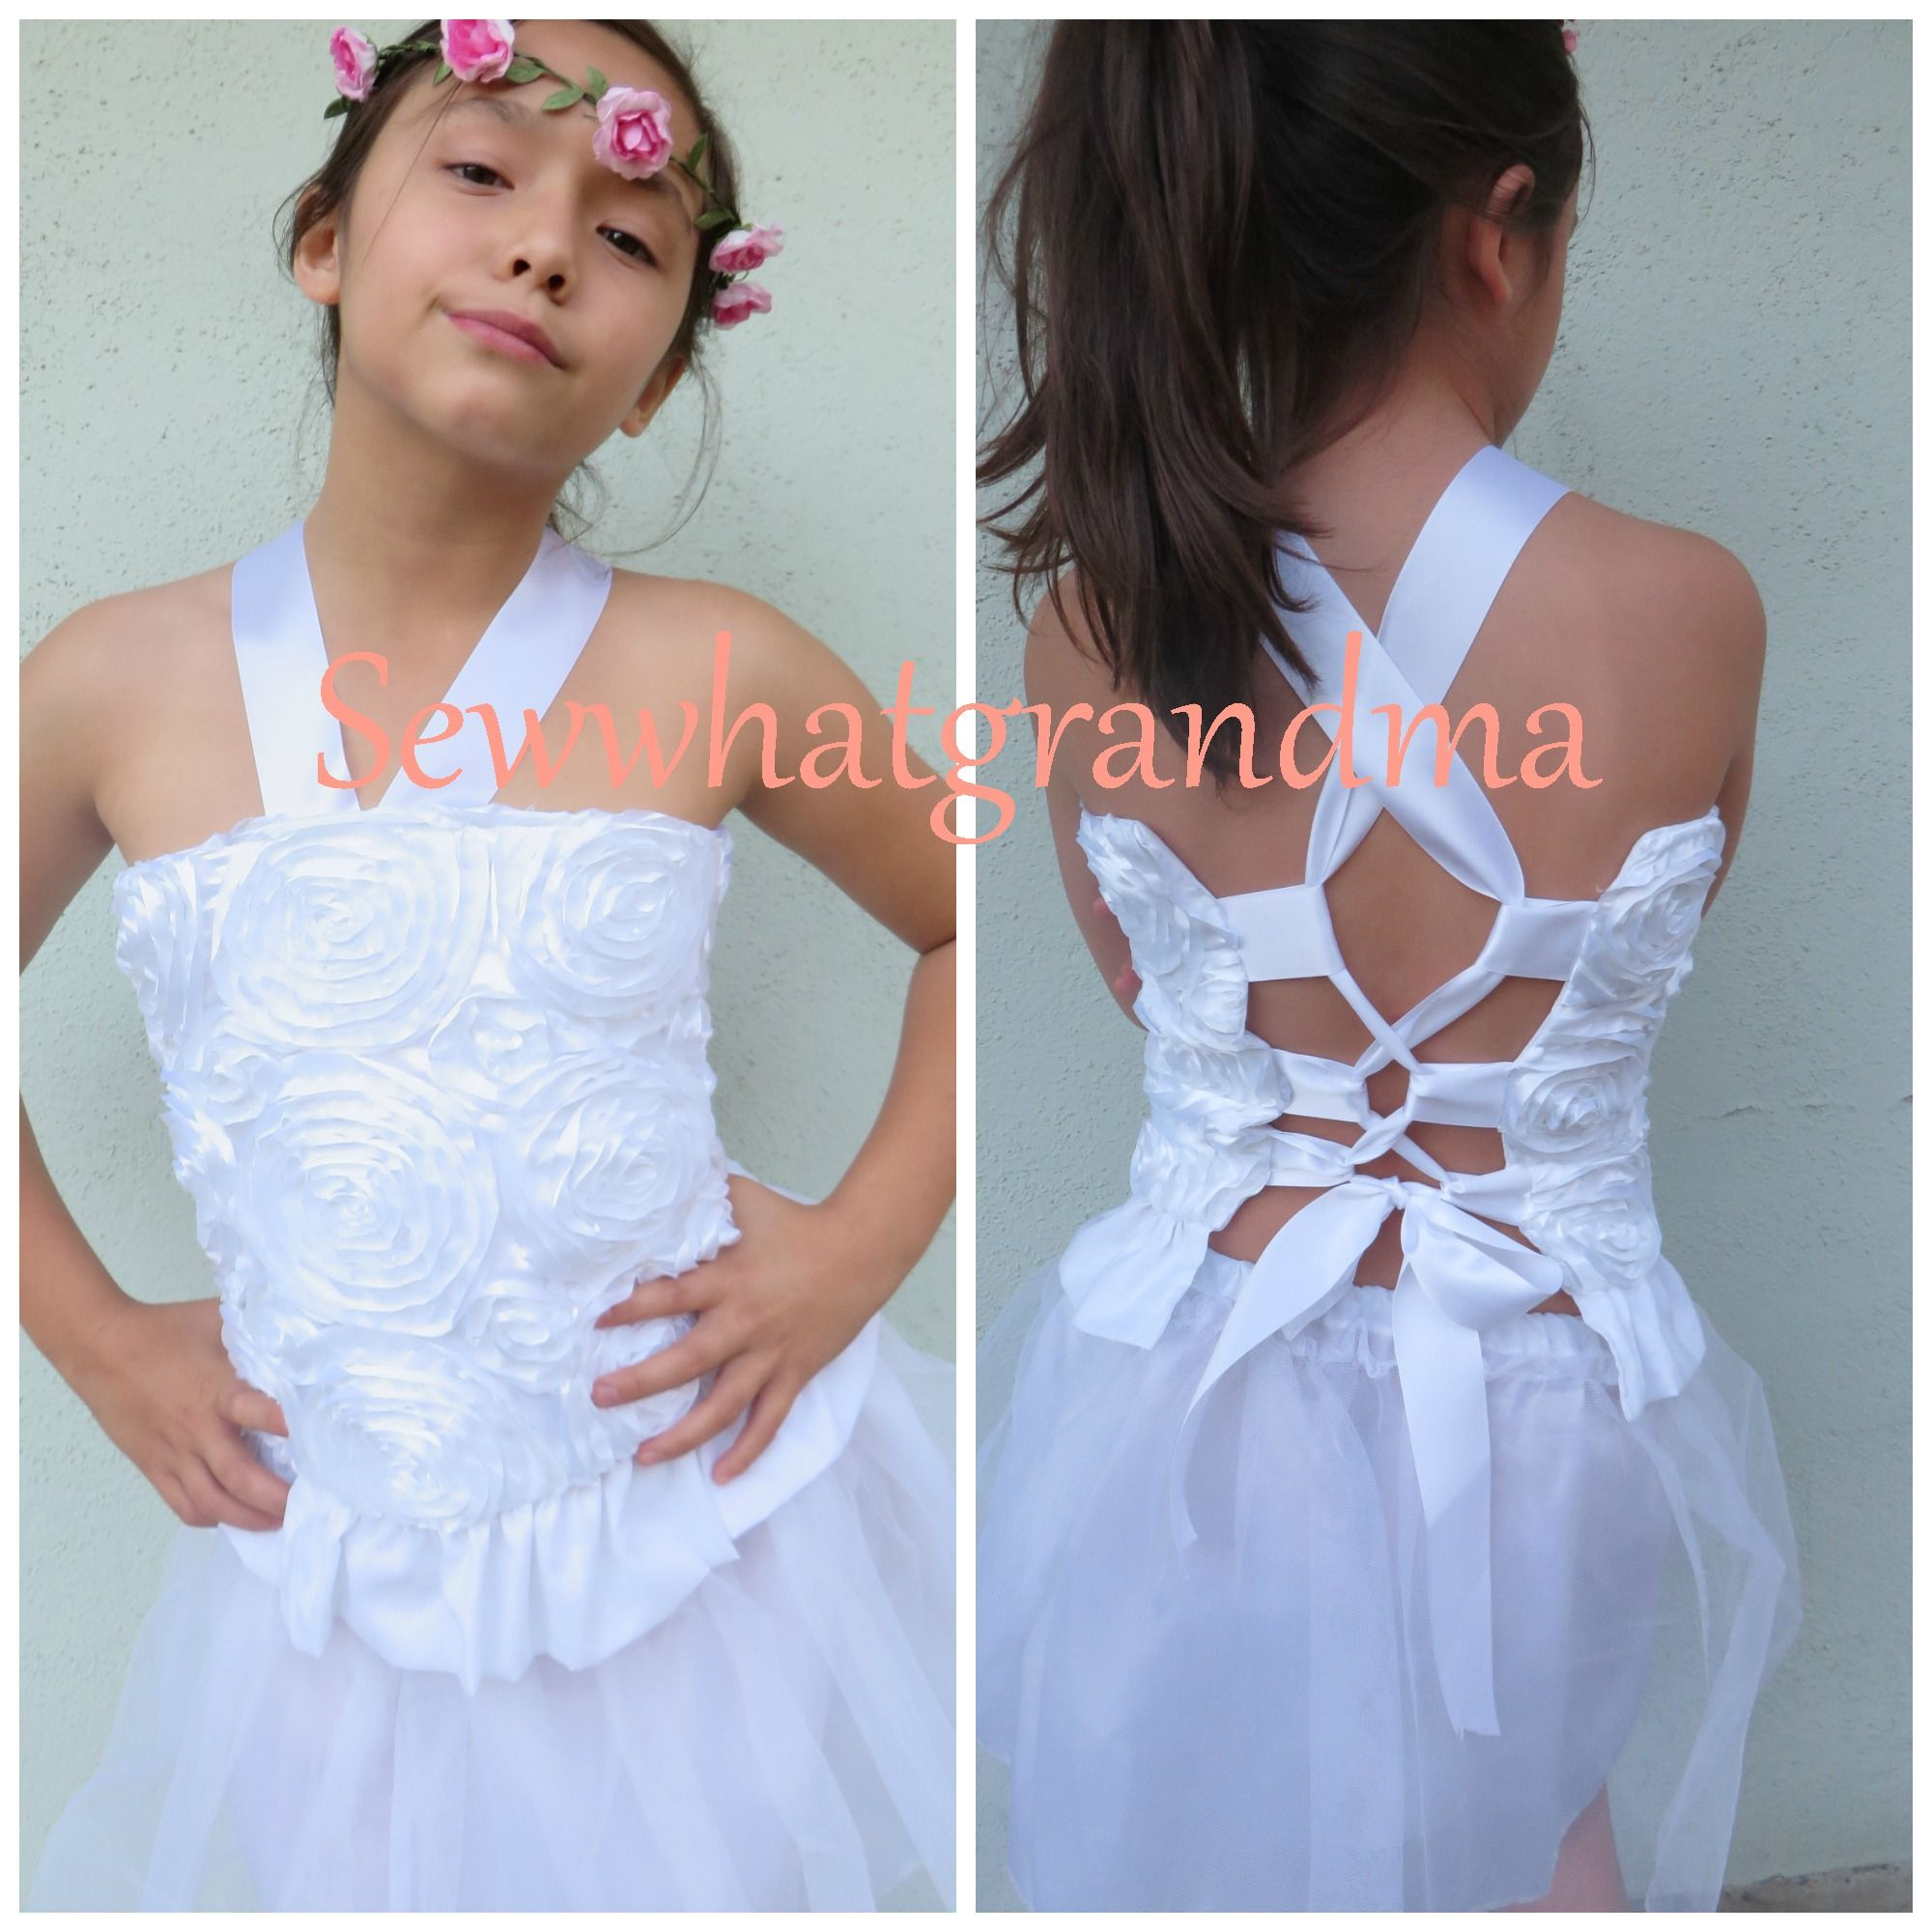 Sample sale! White rosette corset top only, size 10T $25